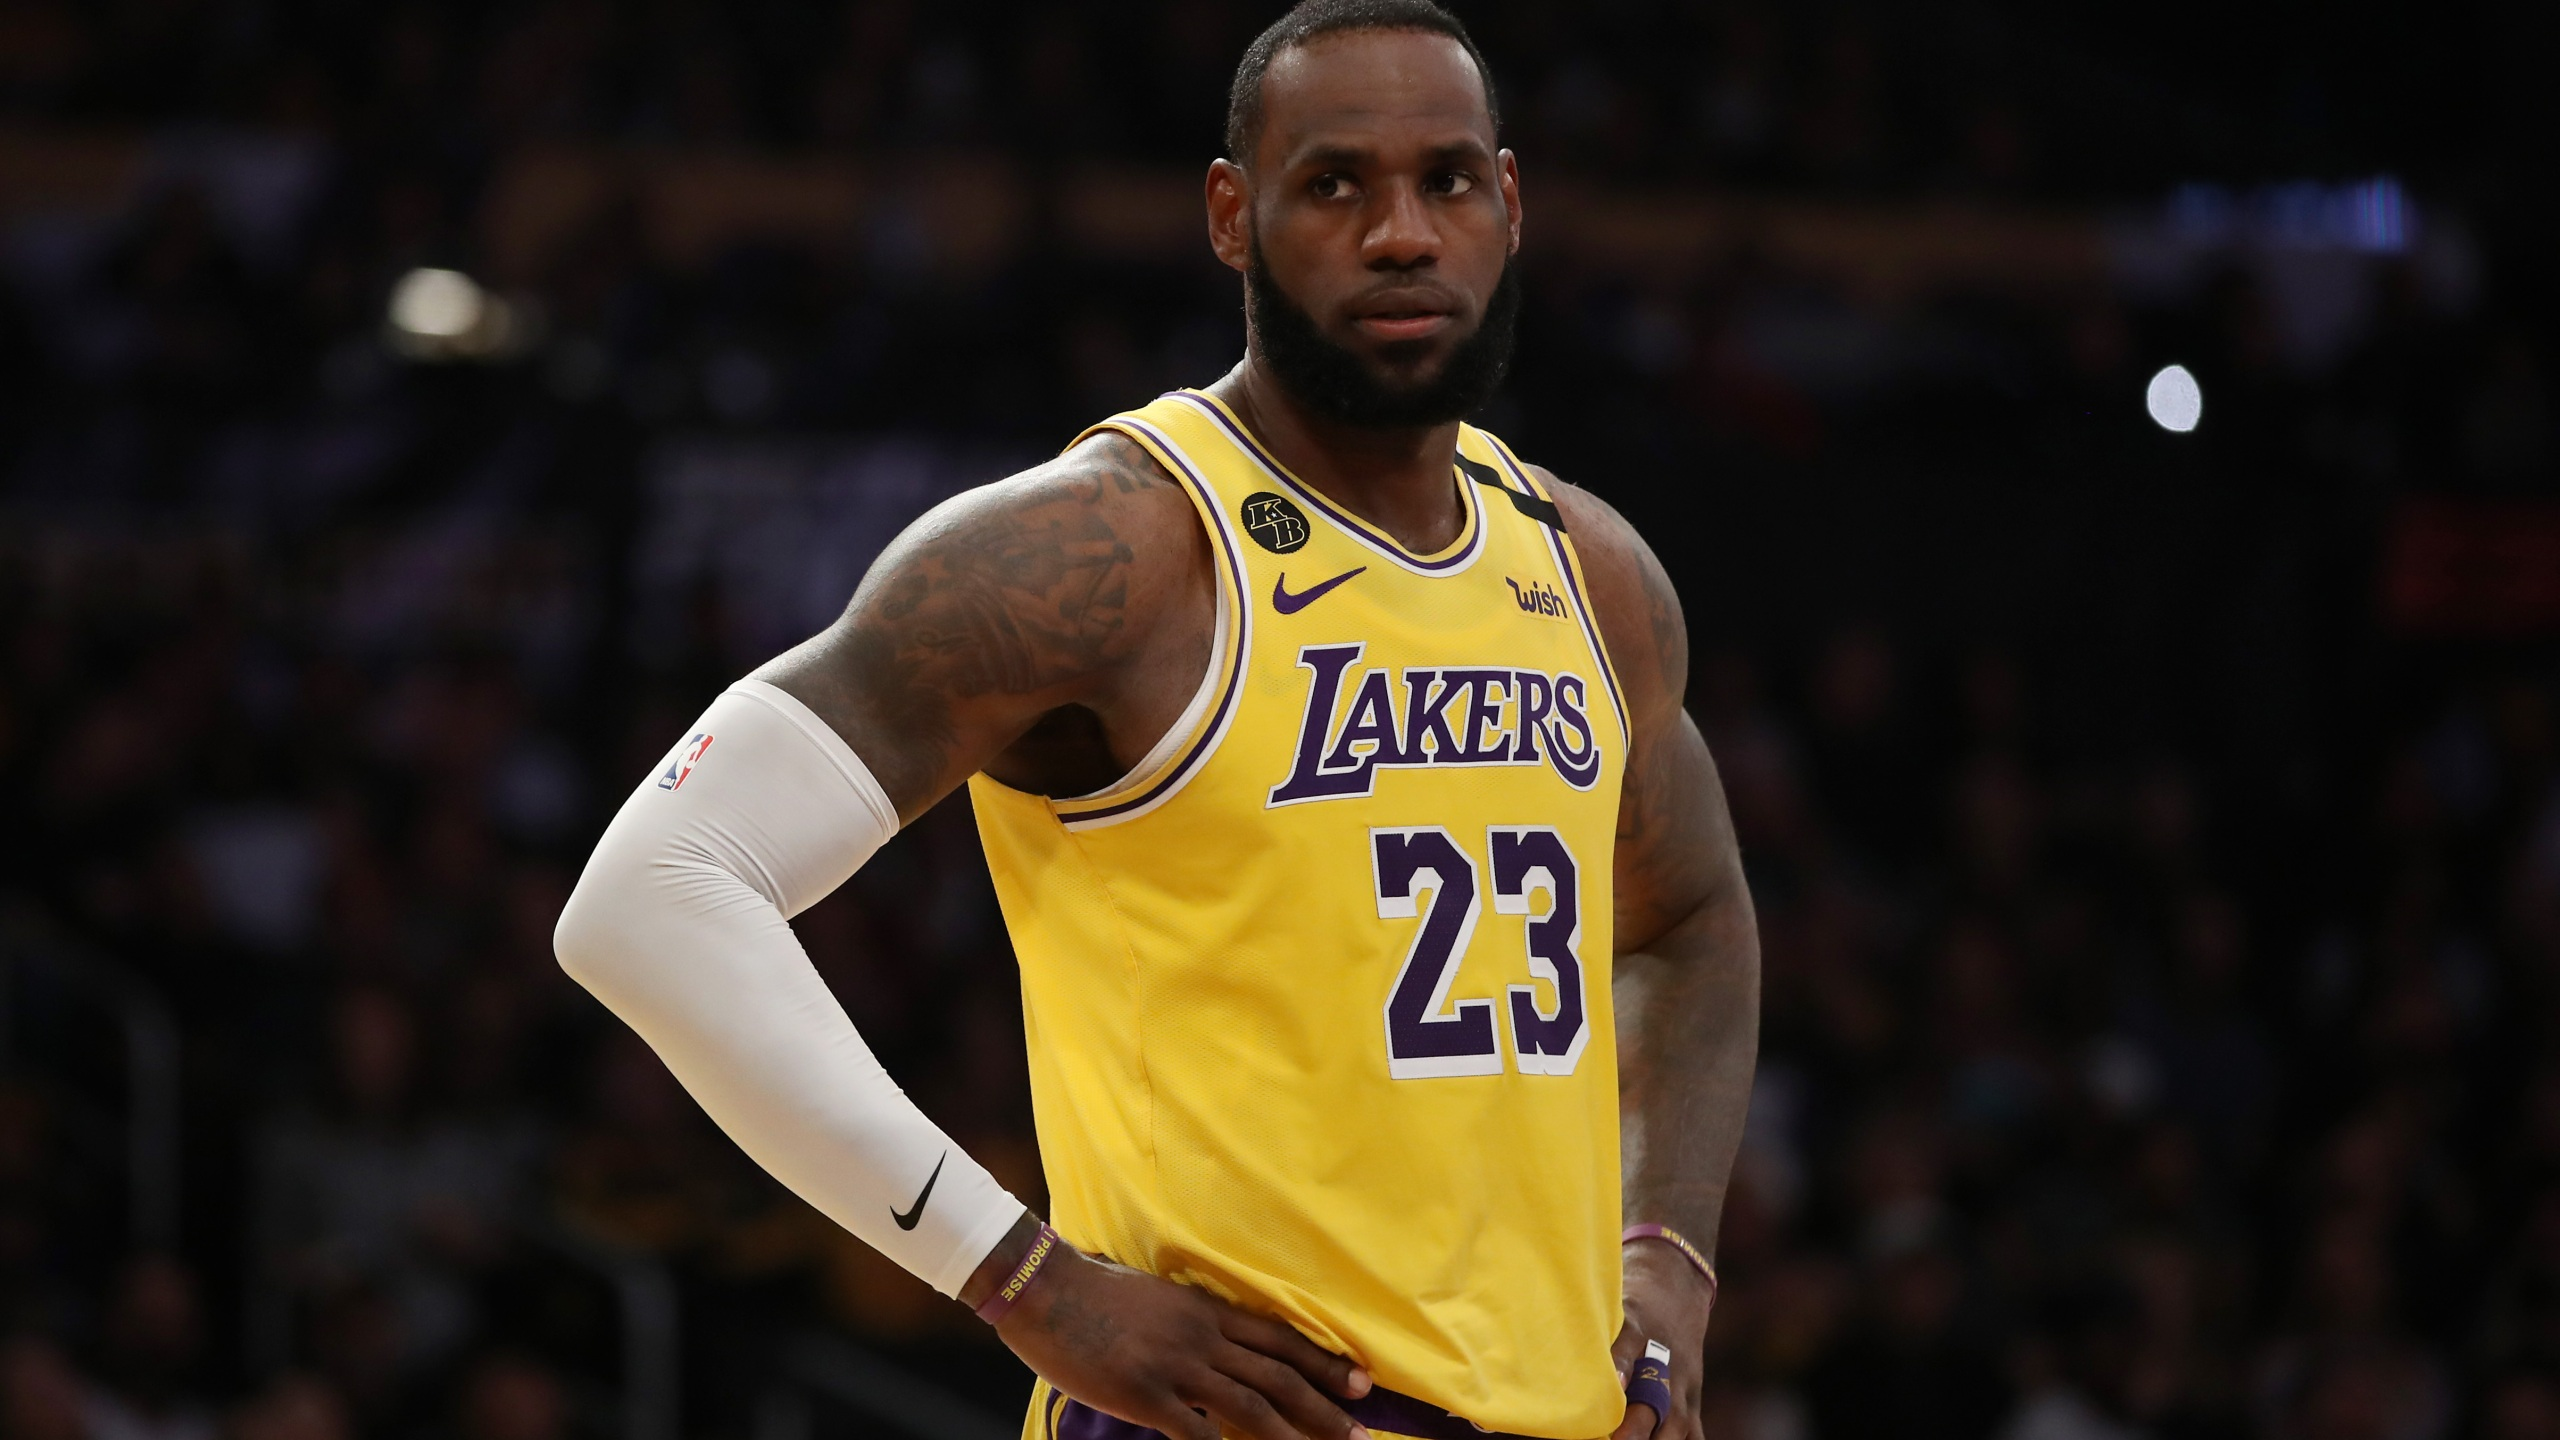 LeBron James of the Los Angeles Lakers stands on the court in a game against the New Orleans Pelicans at Staples Center on Feb. 25, 2020. (Katelyn Mulcahy / Getty Images)